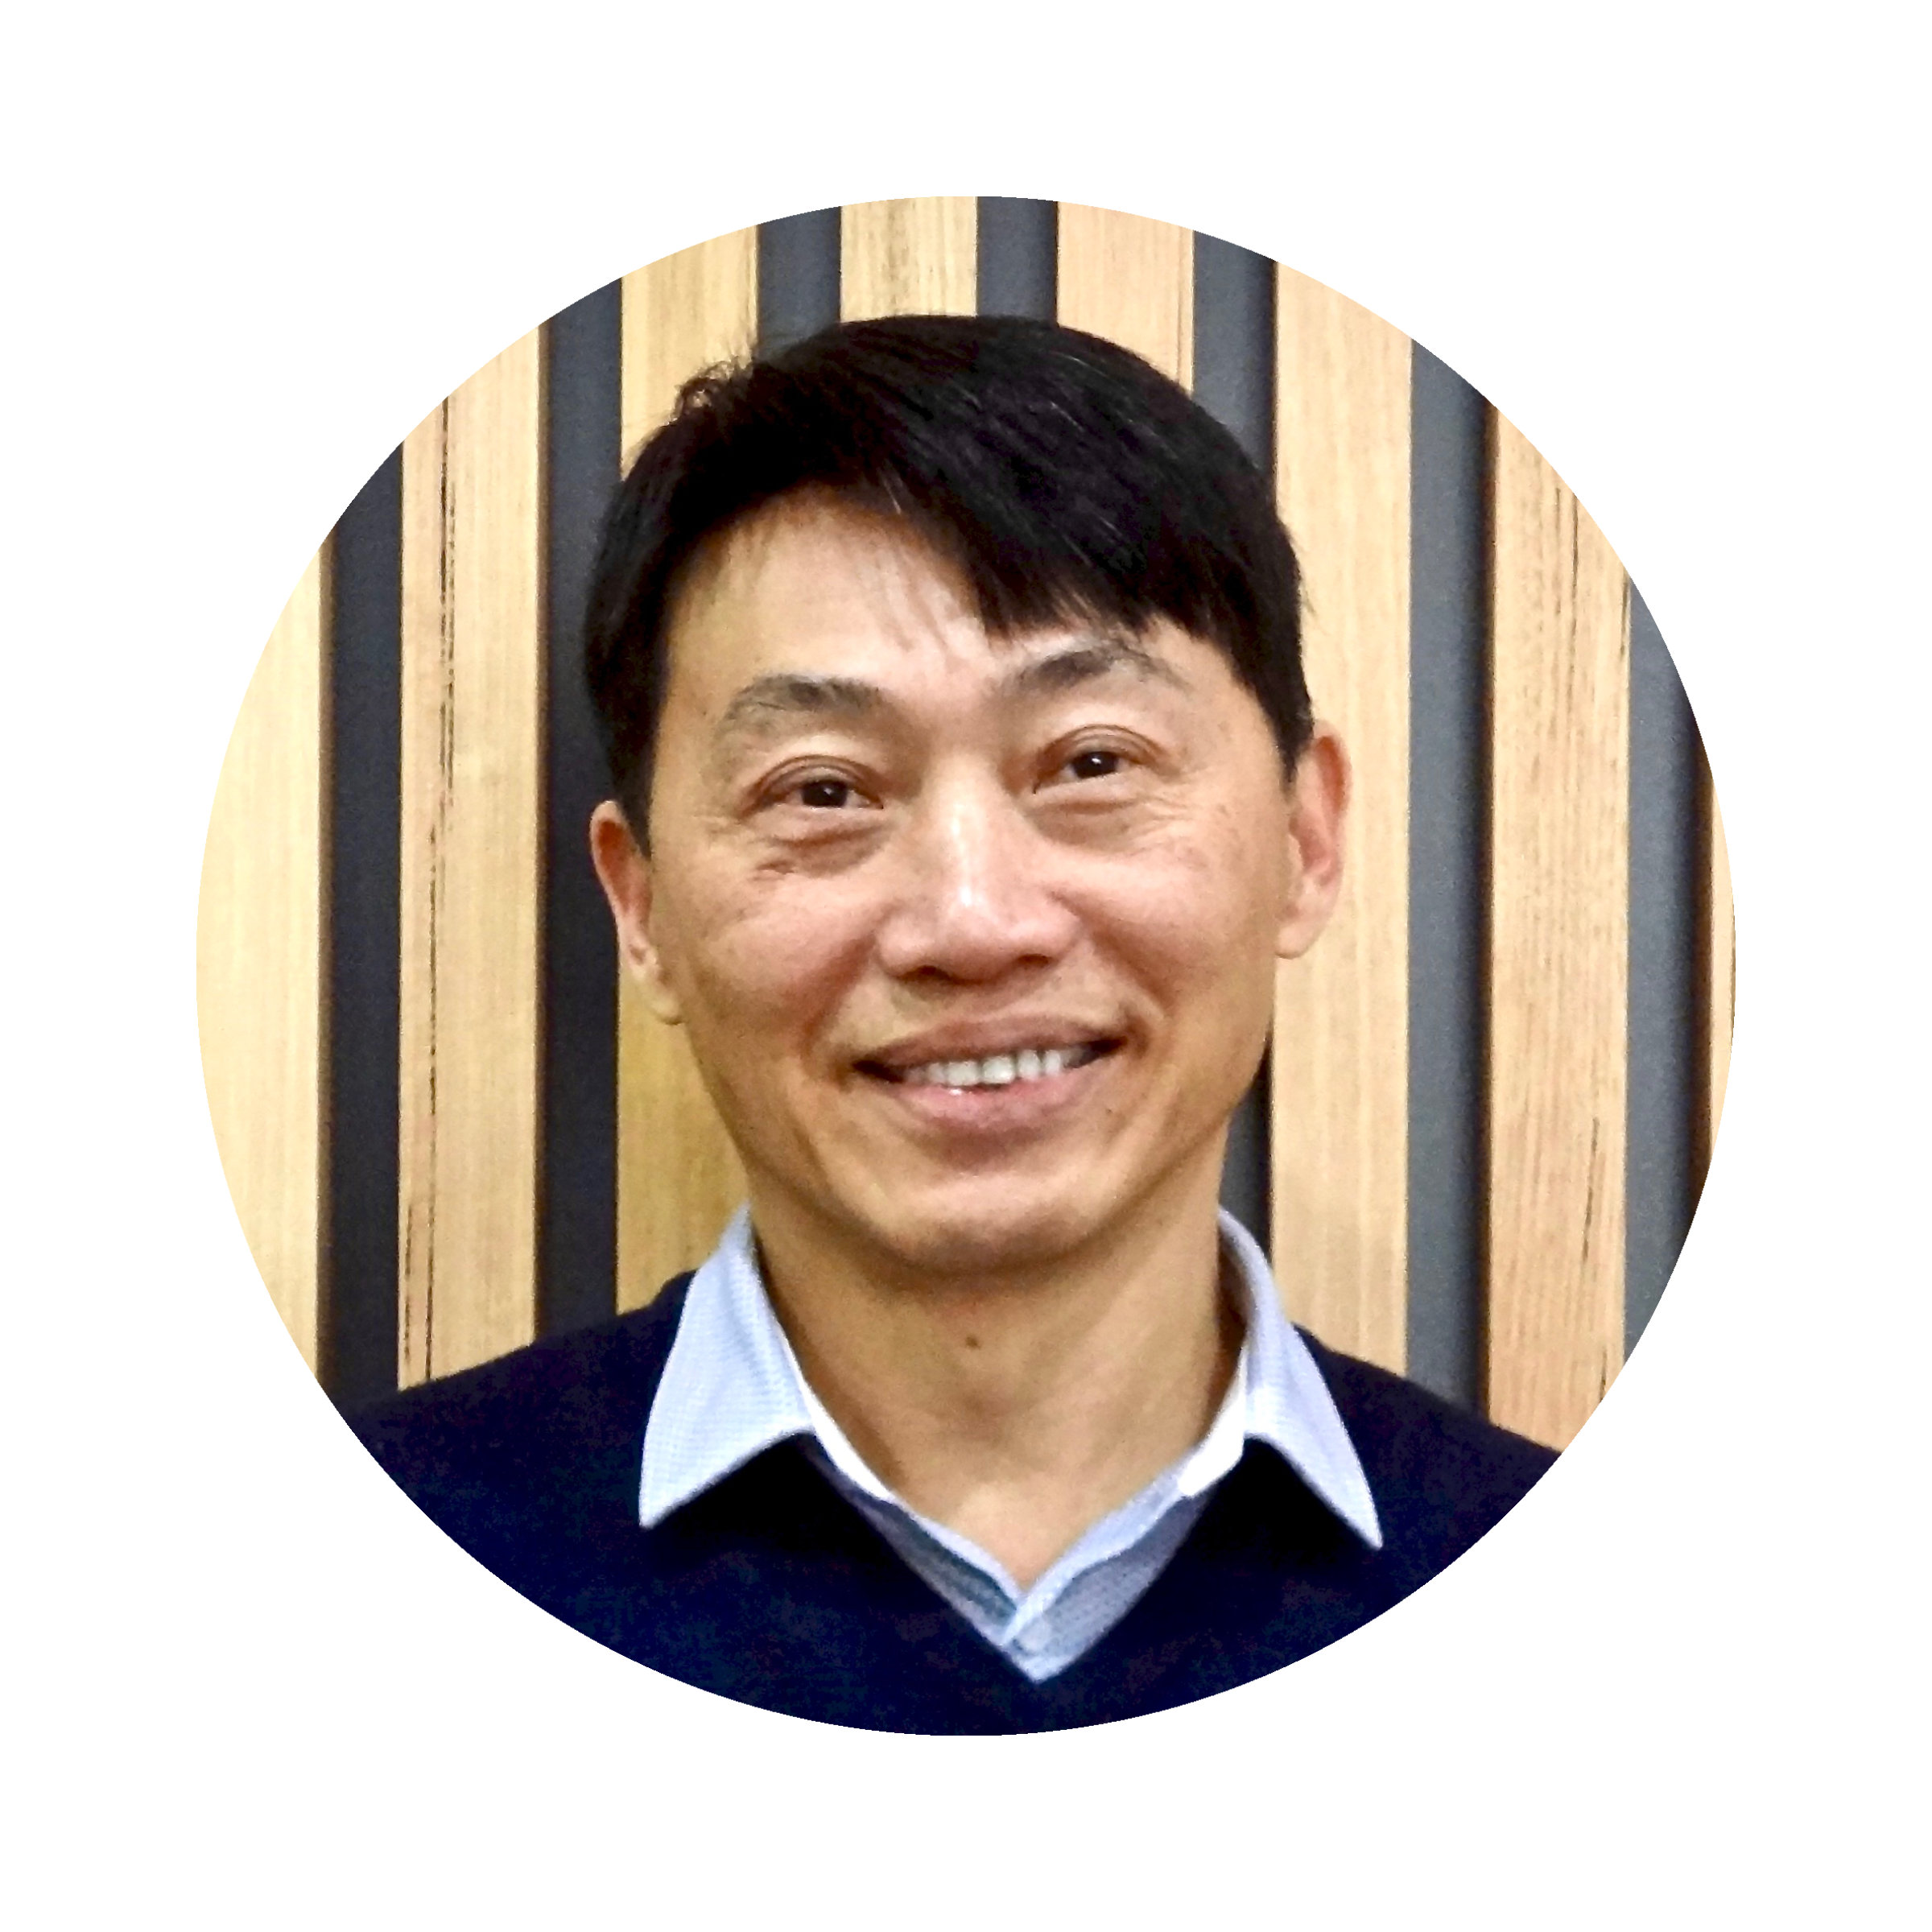 Dr Roland Lee - Dr Roland Lee (MBBS, Dip, NEM) is our practice's Principal Doctor and has been with us since we opened in 1996. Dr Lee strives to provide empathetic and holistic patient care with a focus on preventative health and has an interest in nutrition, travel medicine, immunisation, exercise and sports medicine. His approach to medicine is to ensure a healthy lifestyle supported by tailored exercise appropriate for the patient.Mon-Tue: 9am-6pm | Wed: 9am-12:30pm | Thu-Fri: 9am-6pm | Sat: 9am-12pm